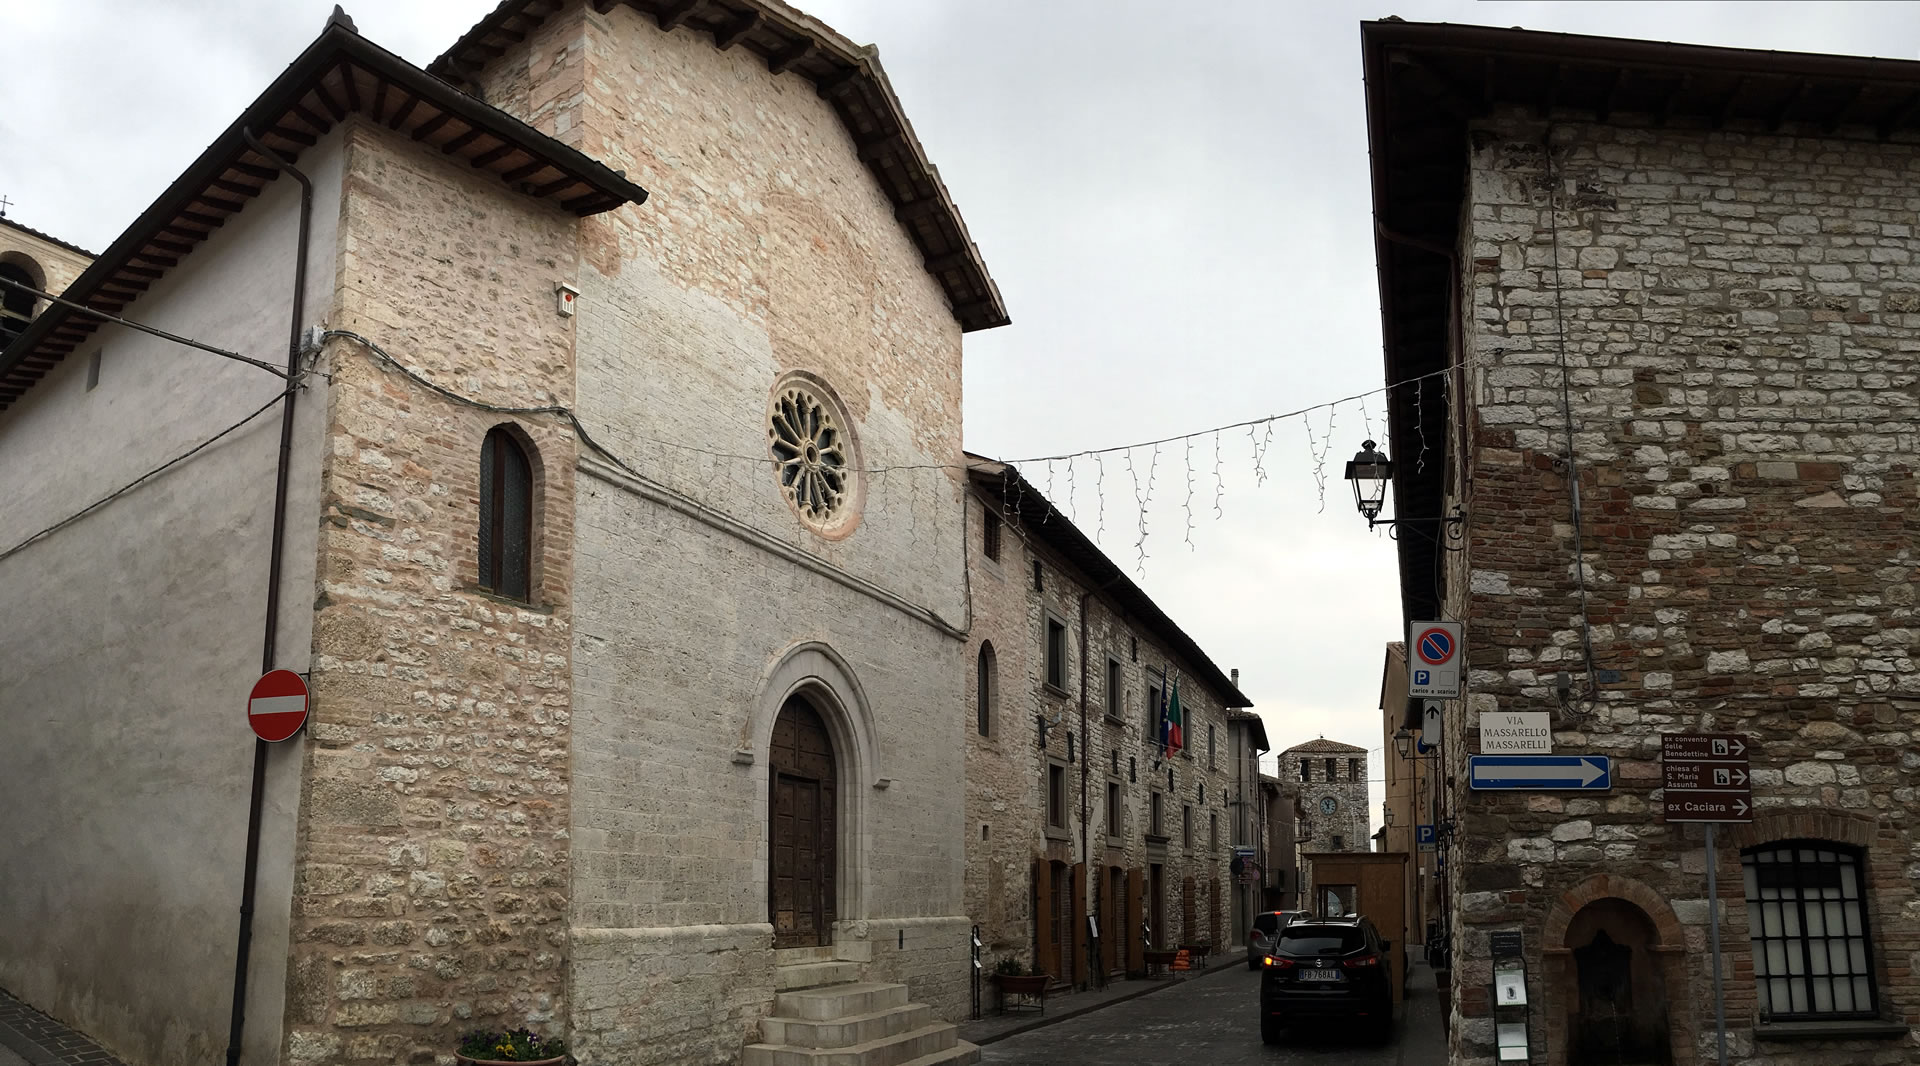 Church of San Francesco Costacciaro